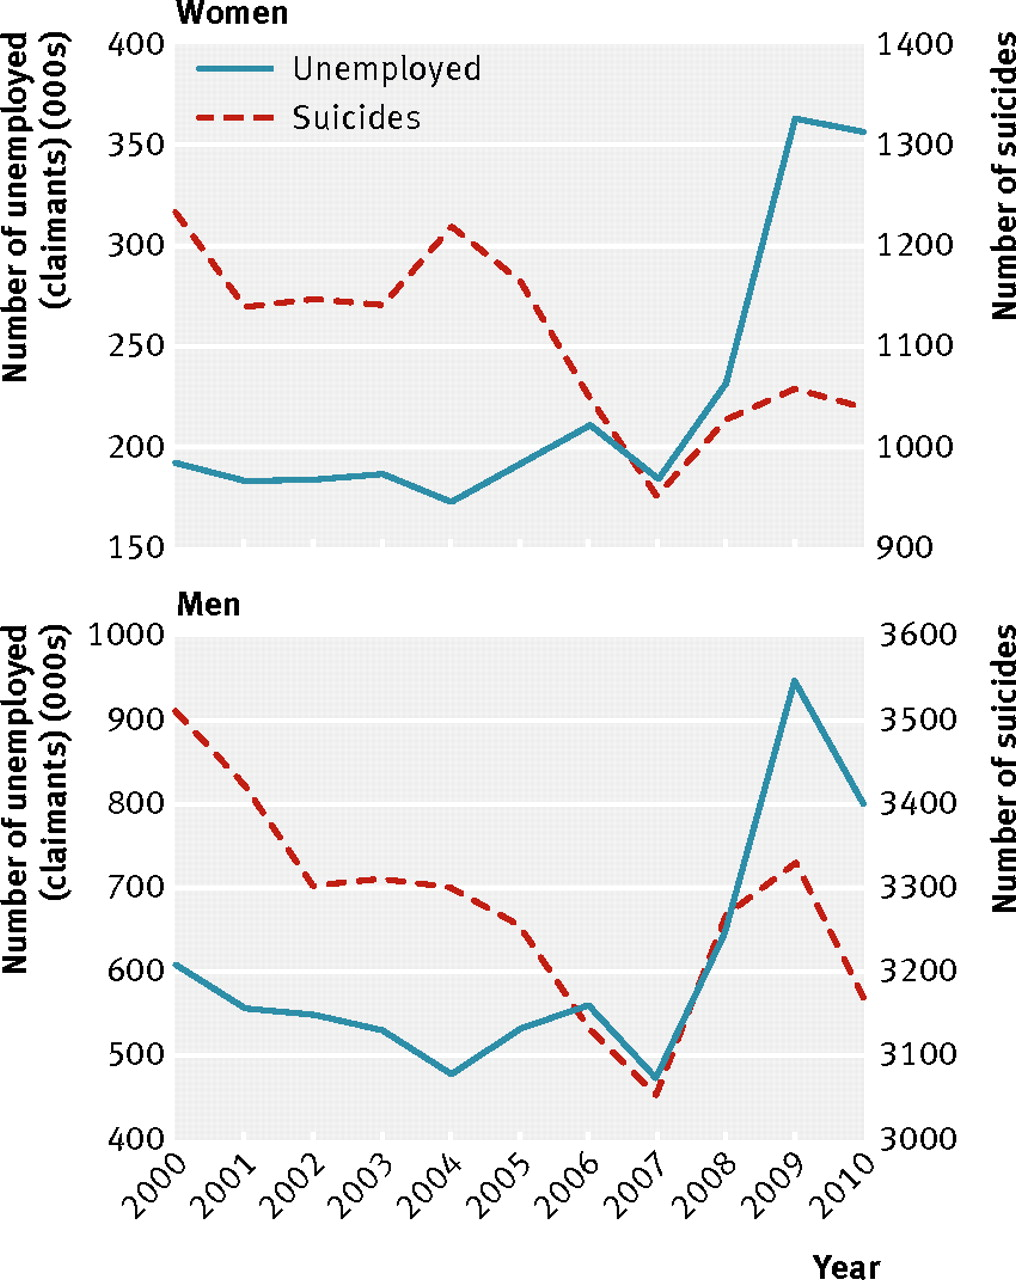 suicides associated the economic recession in england trends in the numbers of suicides and unemployment claimants in england 2000 10 by sex